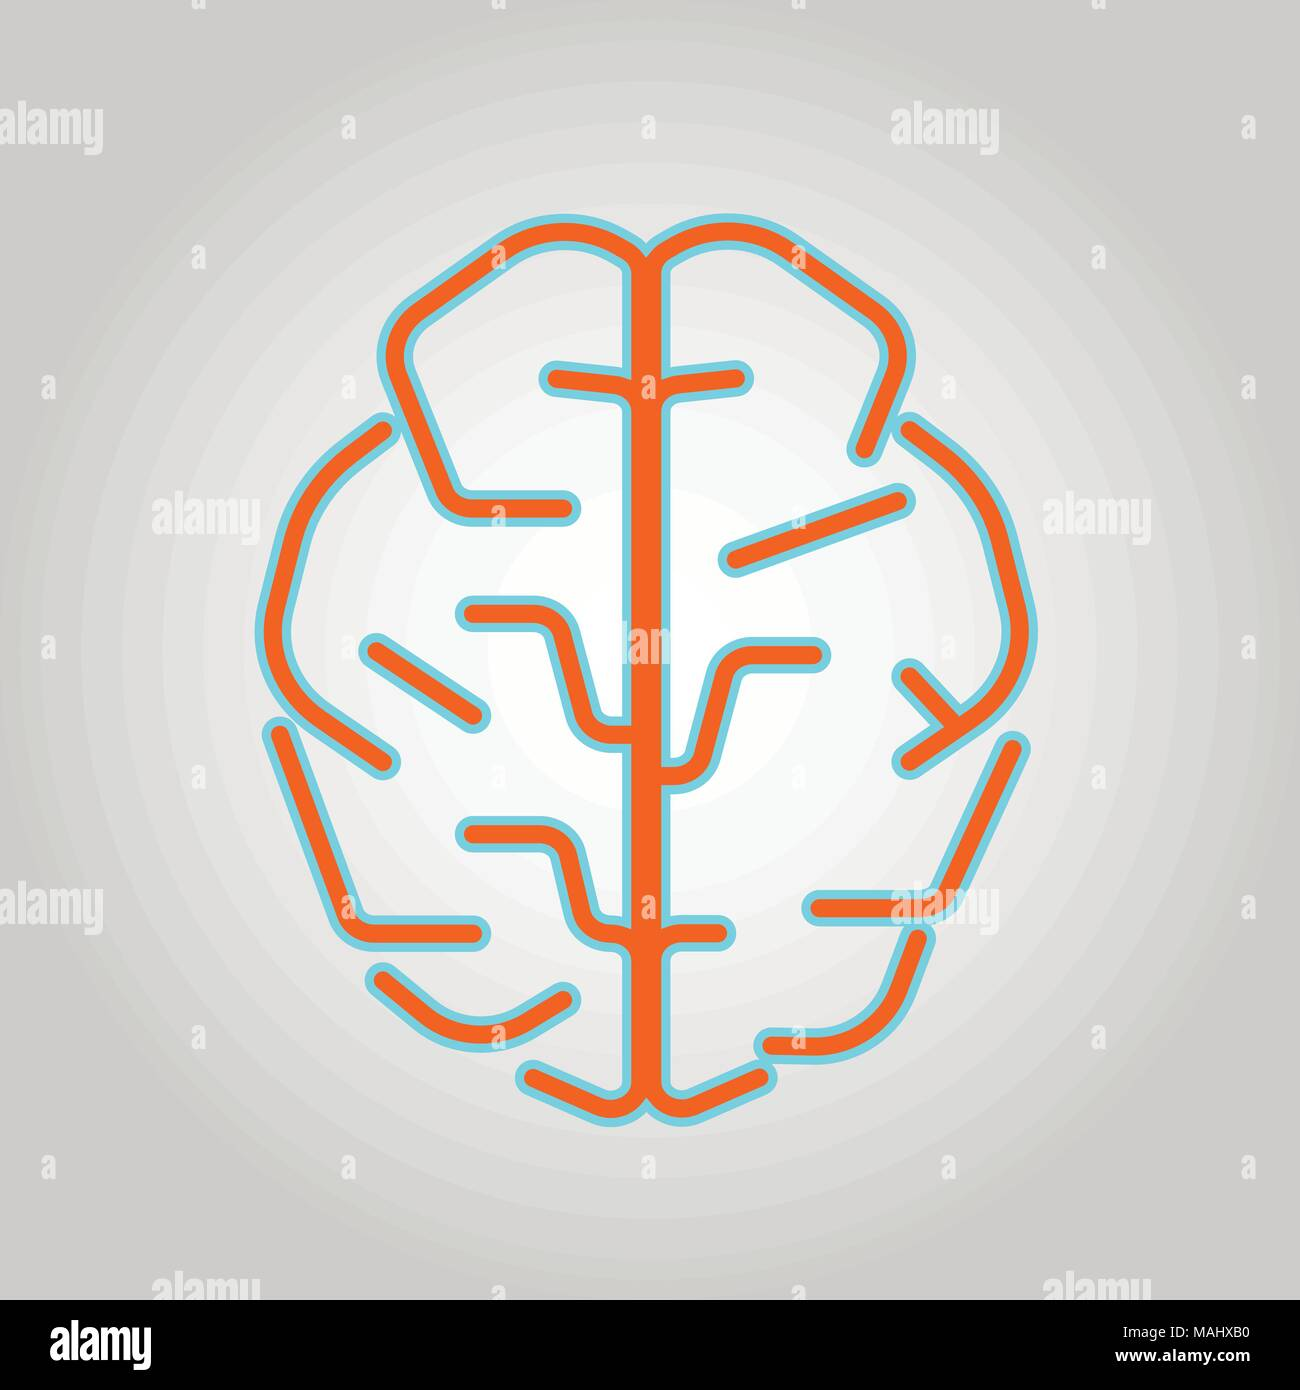 Brain Logo silhouette top view design vector template. Brainstorm think idea Logotype concept icon. - Stock Image